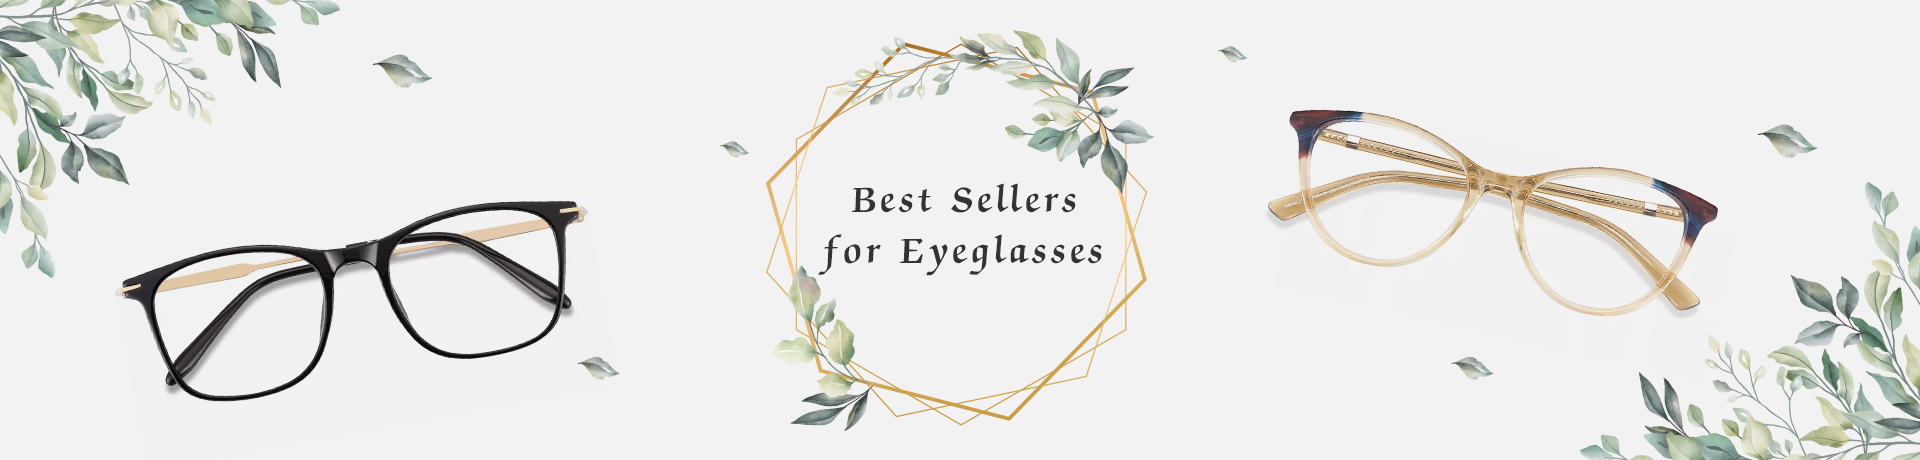 Best Sellers Eyeglasses